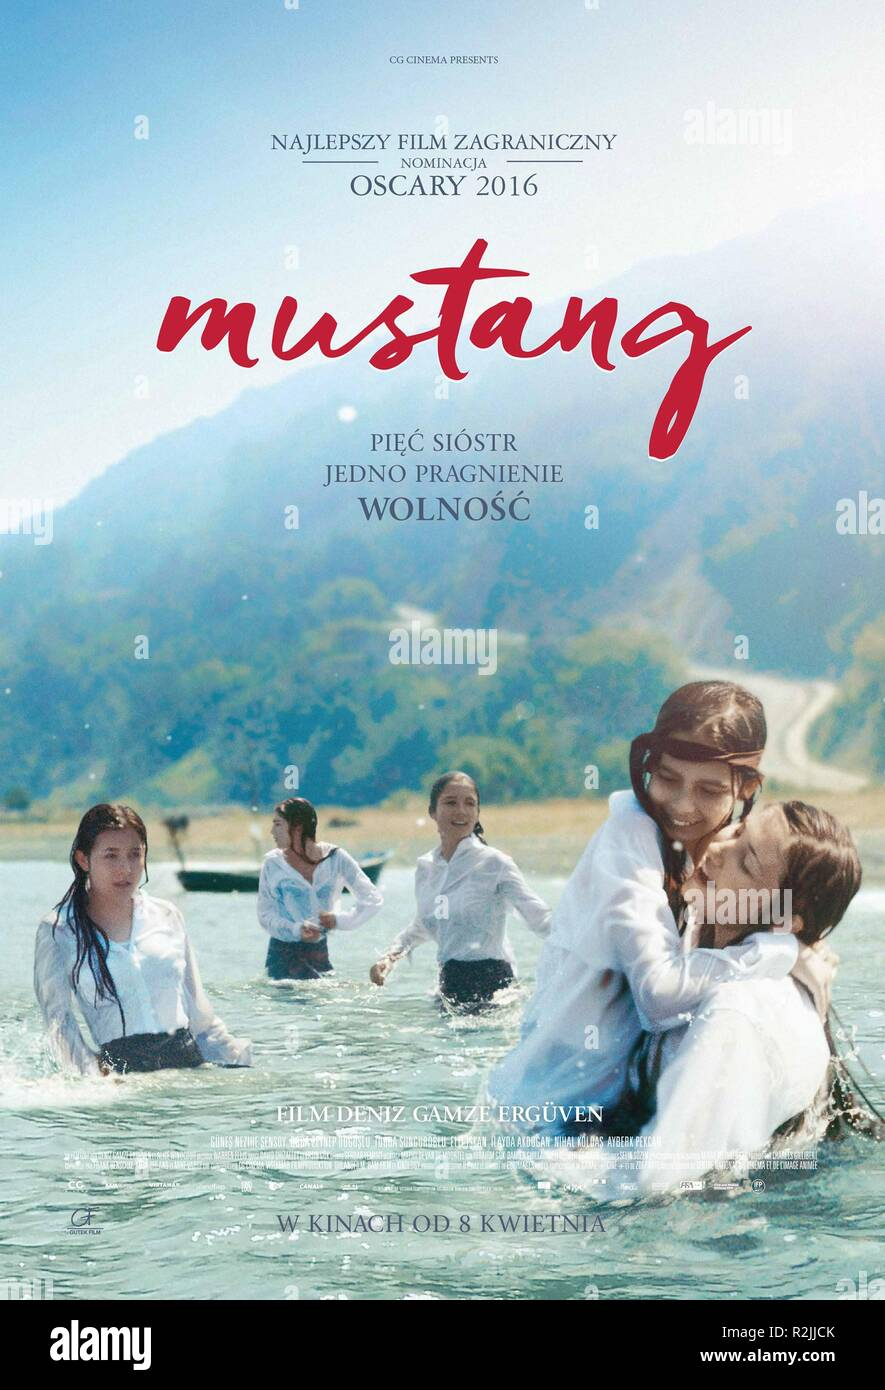 mustang-year-2015-turkey-france-director